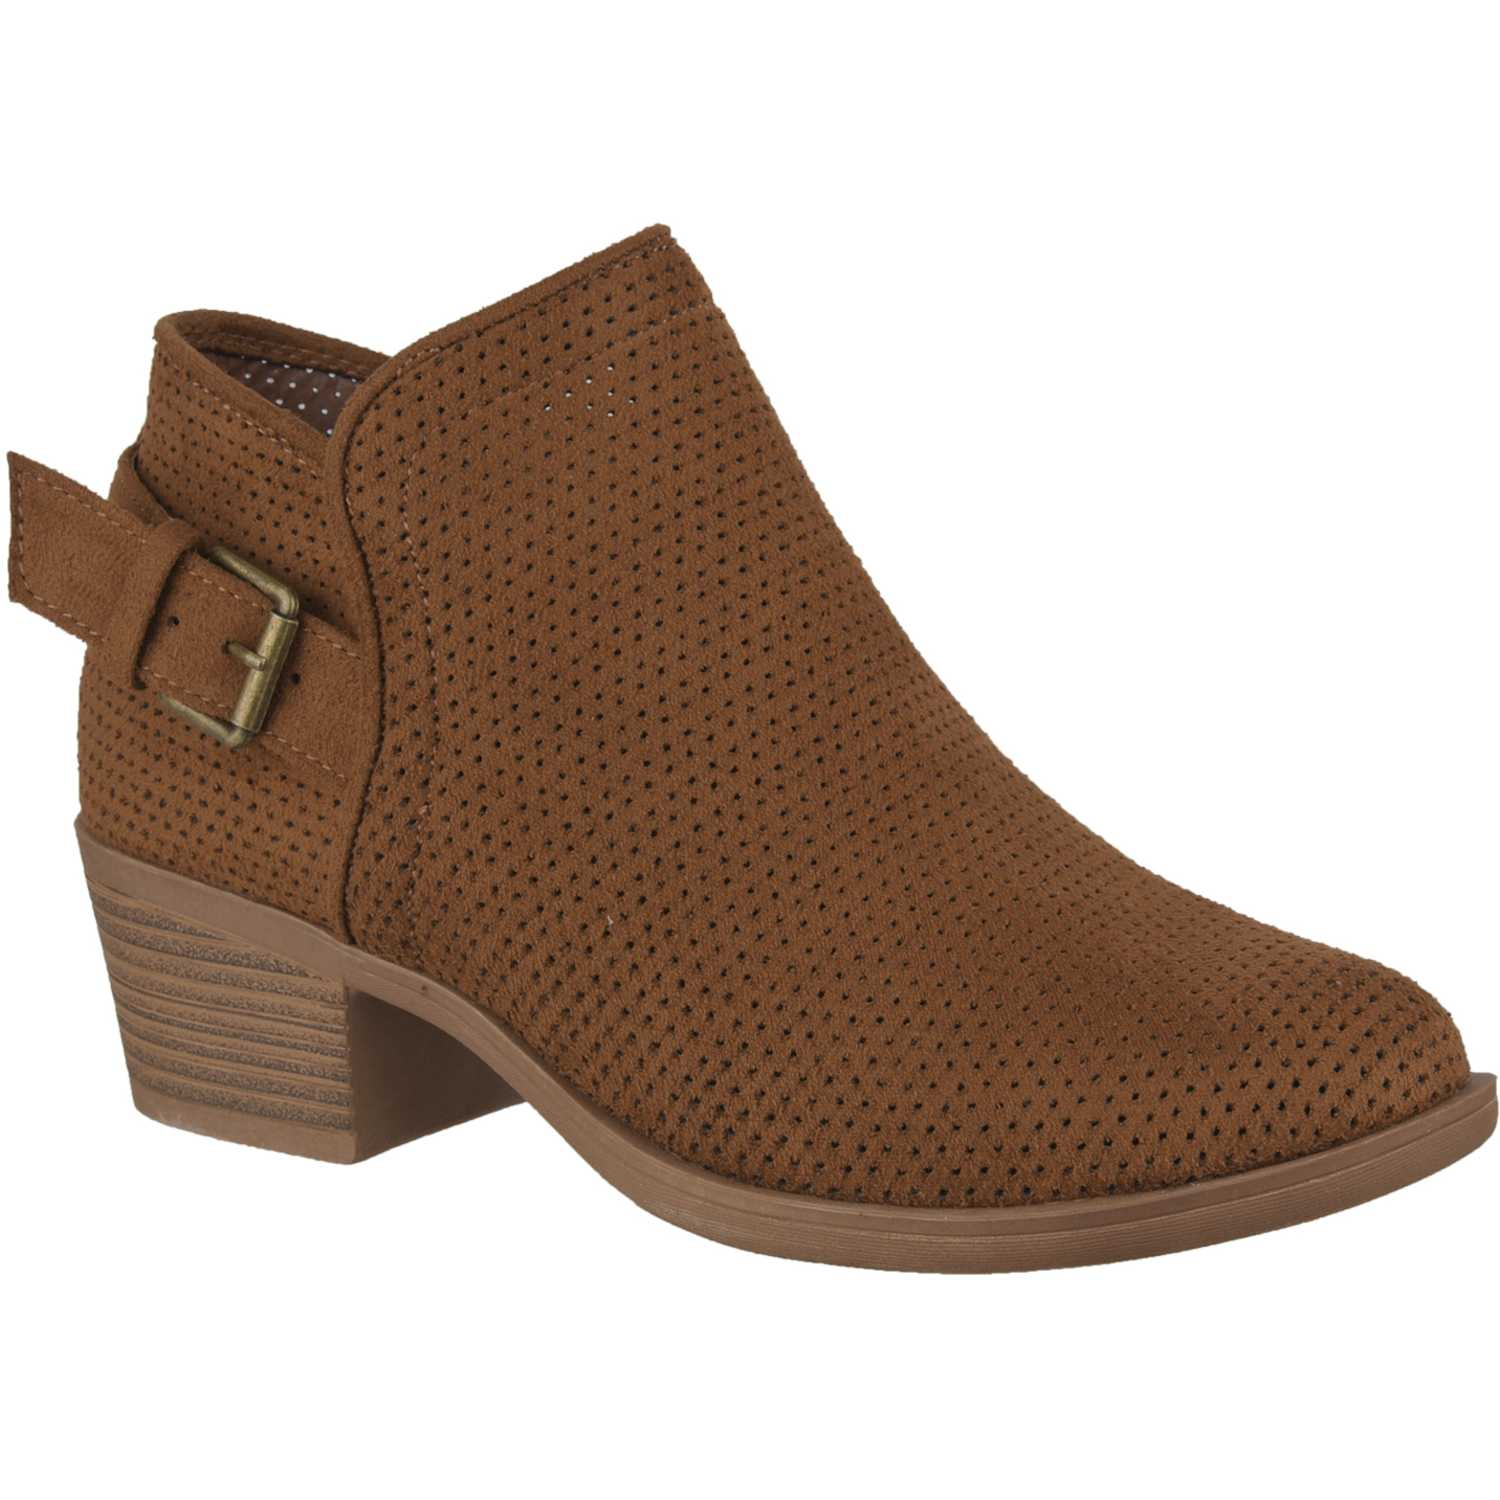 Platanitos c-6512 Camel Estiletos y Pumps